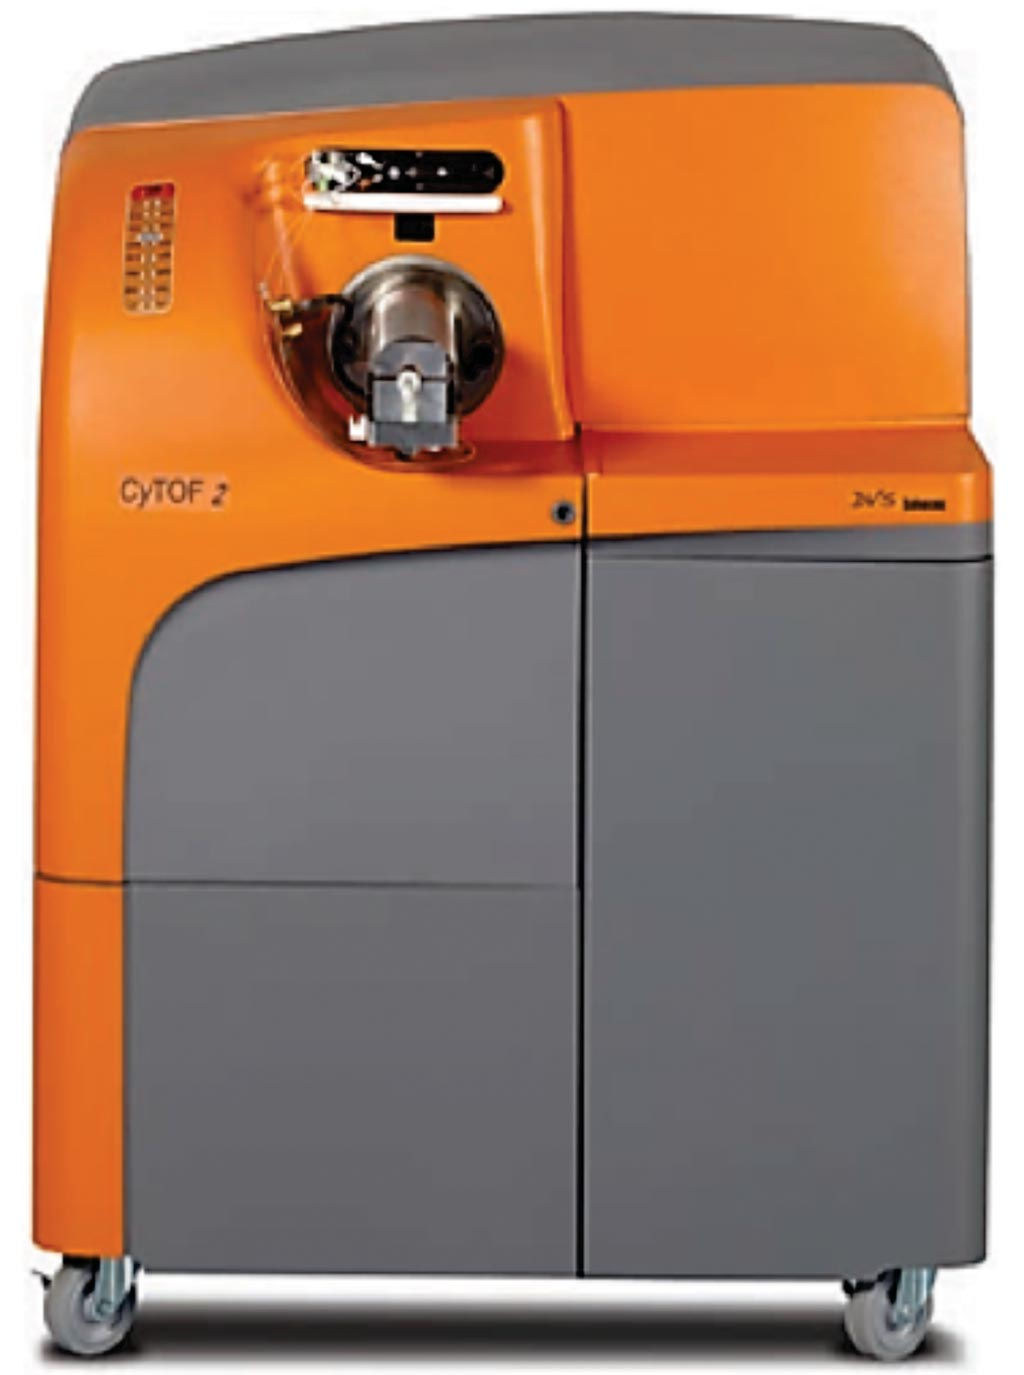 Image: The Helios CyTOF mass cytometry platform (Photo courtesy of Fluidigm).